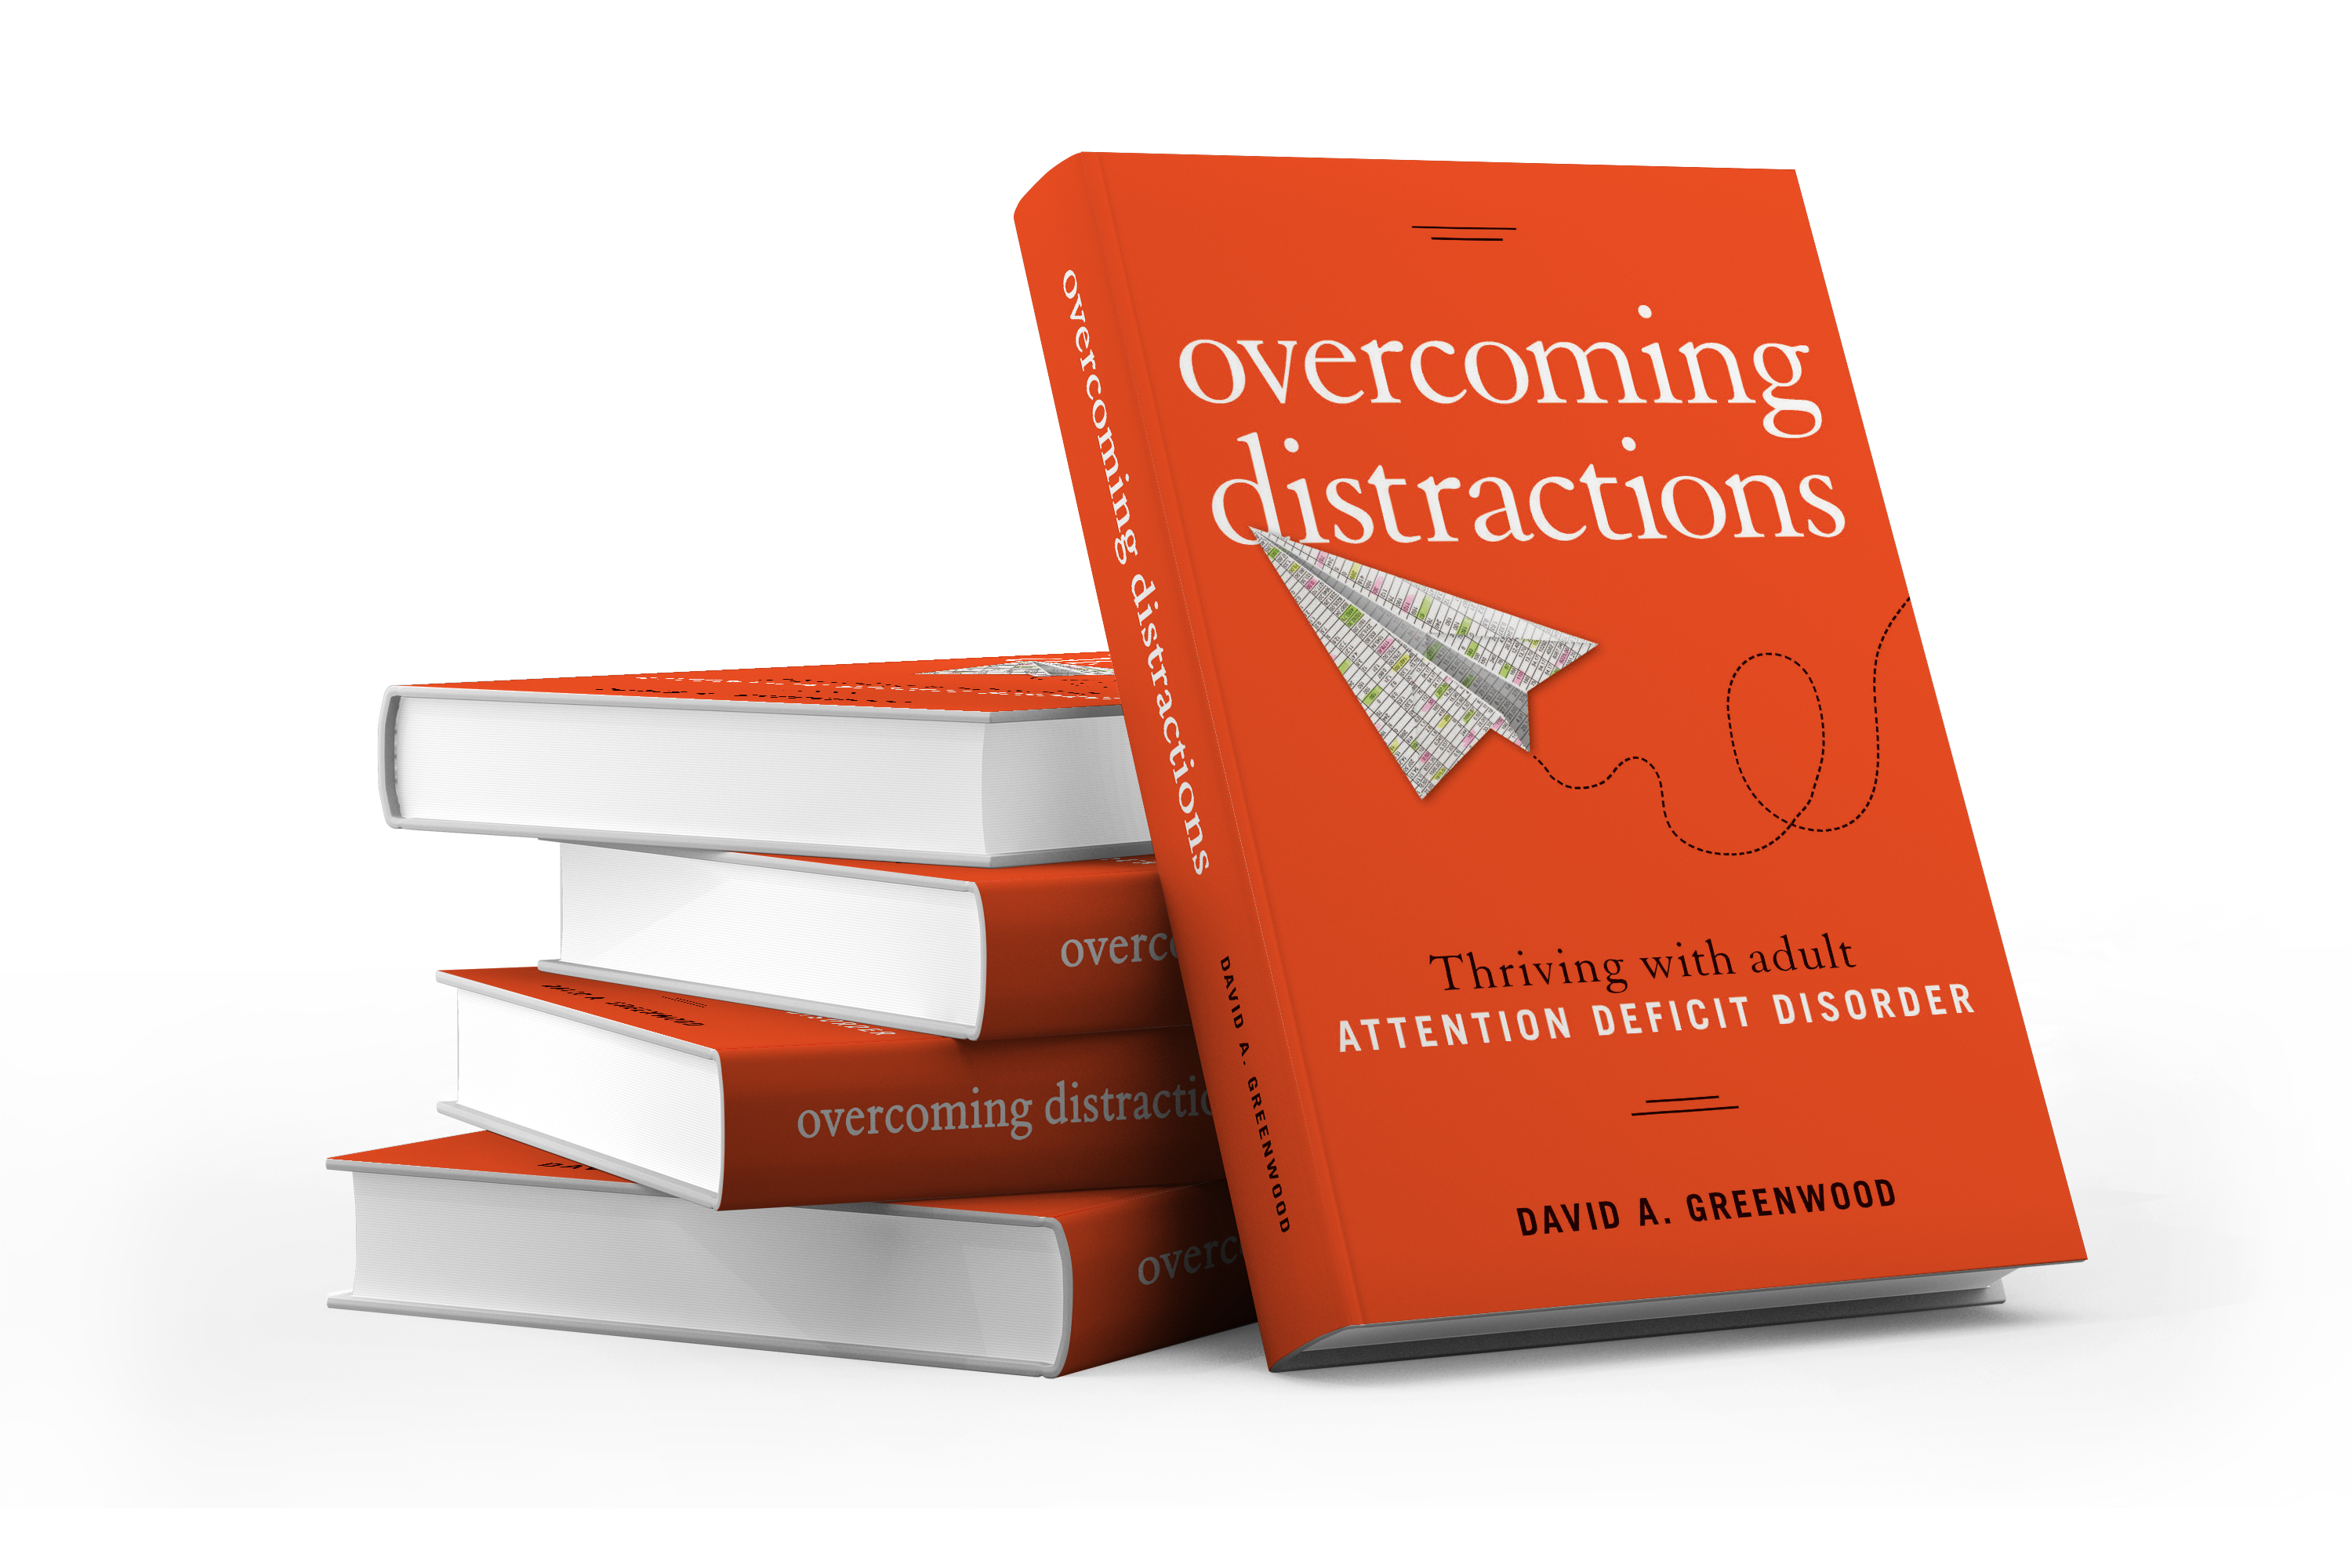 Overcoming Distractions ADHD